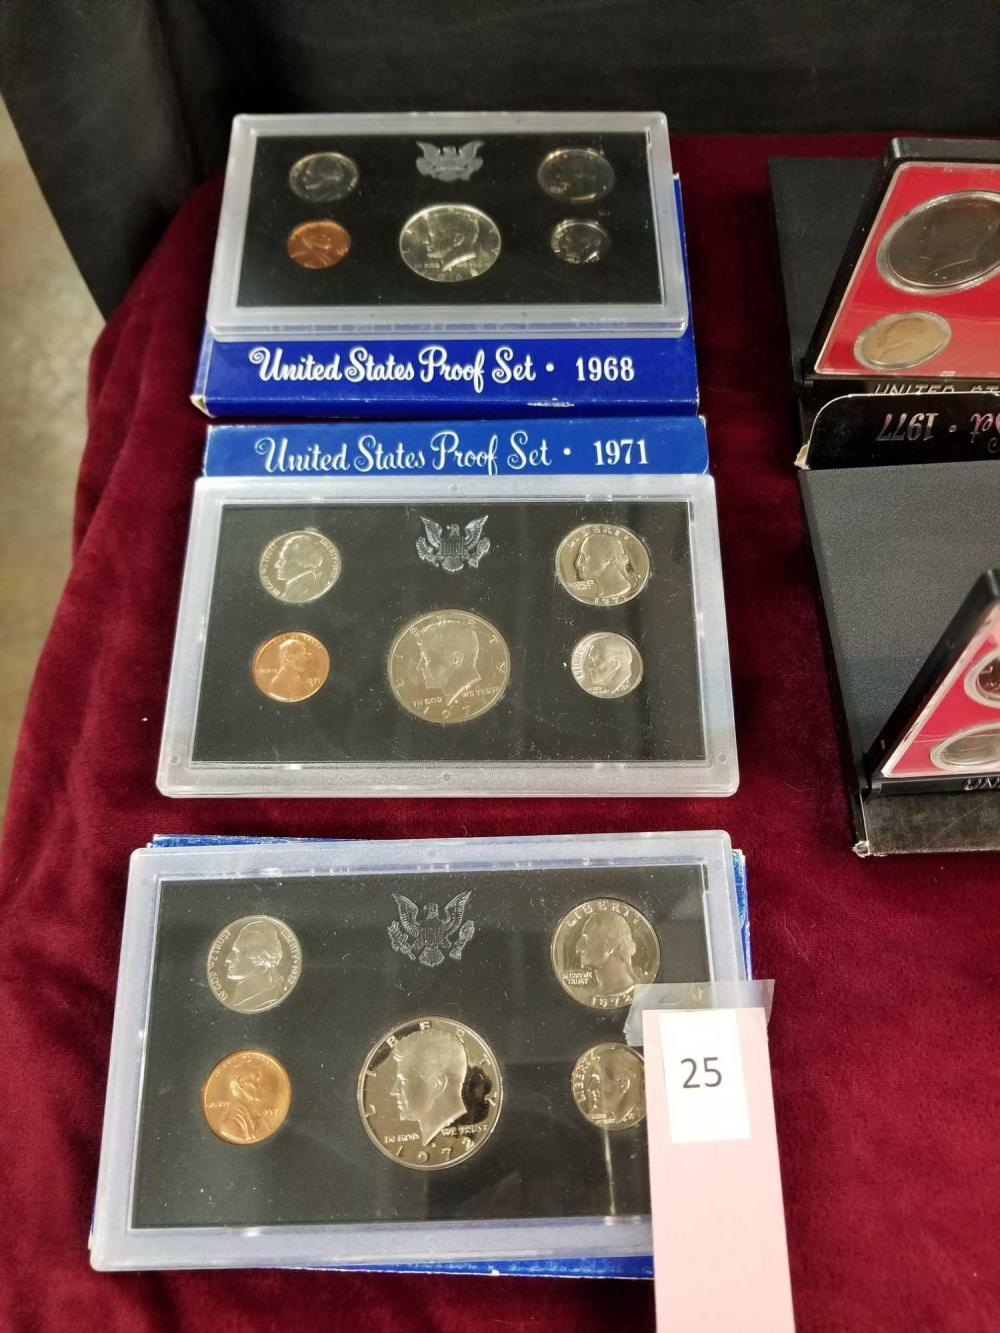 1968, 1971 & 1972 U.S. PROOF COIN SETS - 3 ITEMS